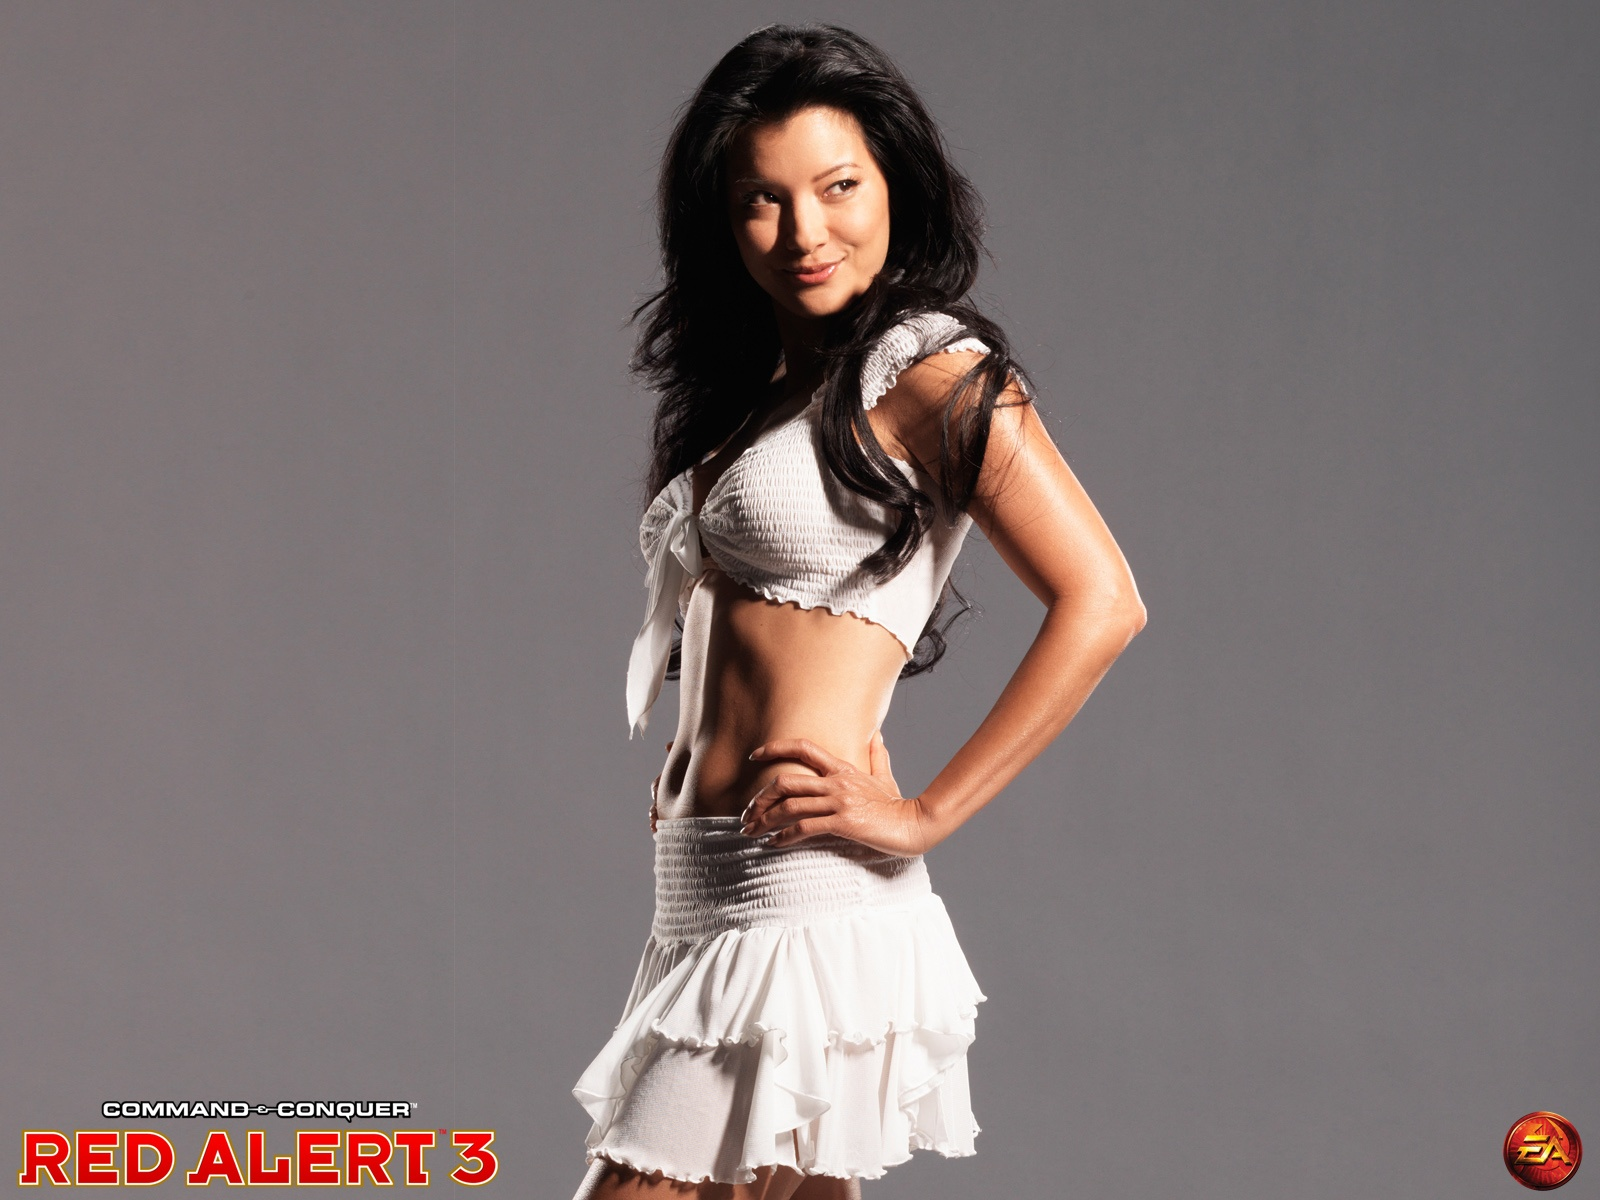 kelly hu wallpapers hd A1